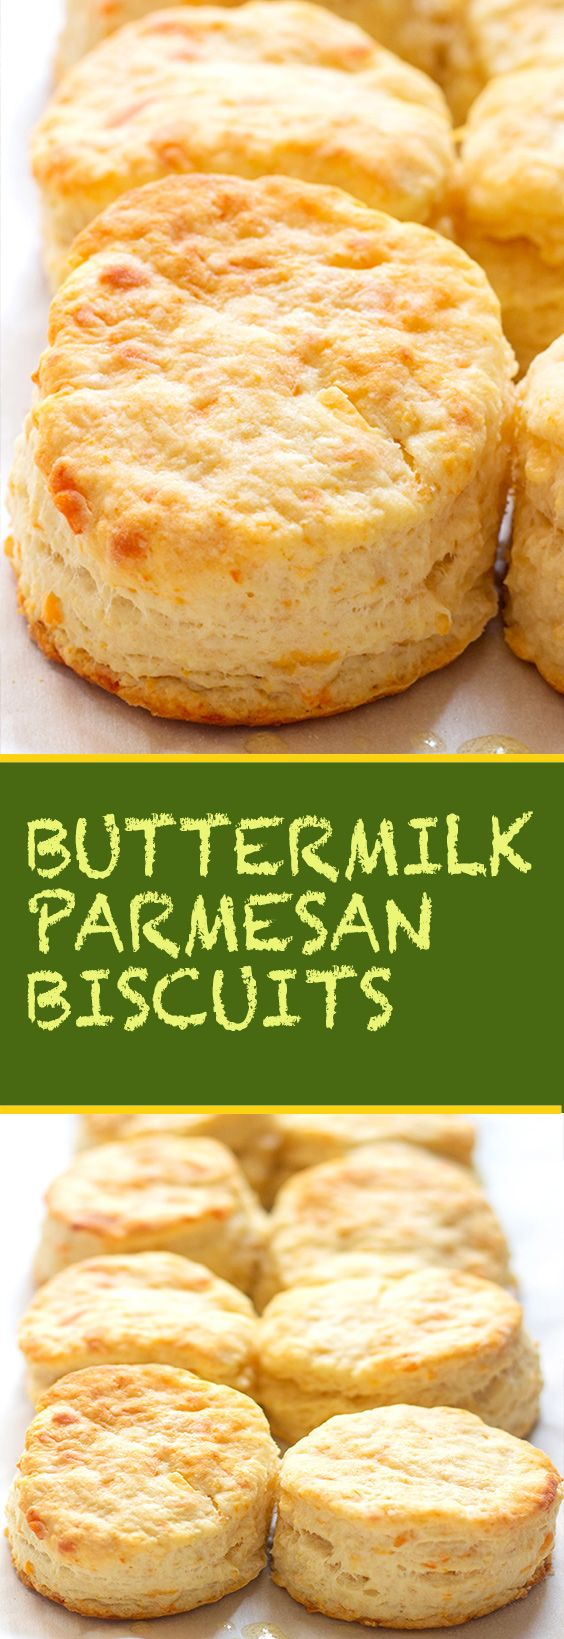 These flaky buttermilk parmesan biscuits are so fluffy and light with the perfect hint of freshly grated parmesan cheese and tangy buttermilk.